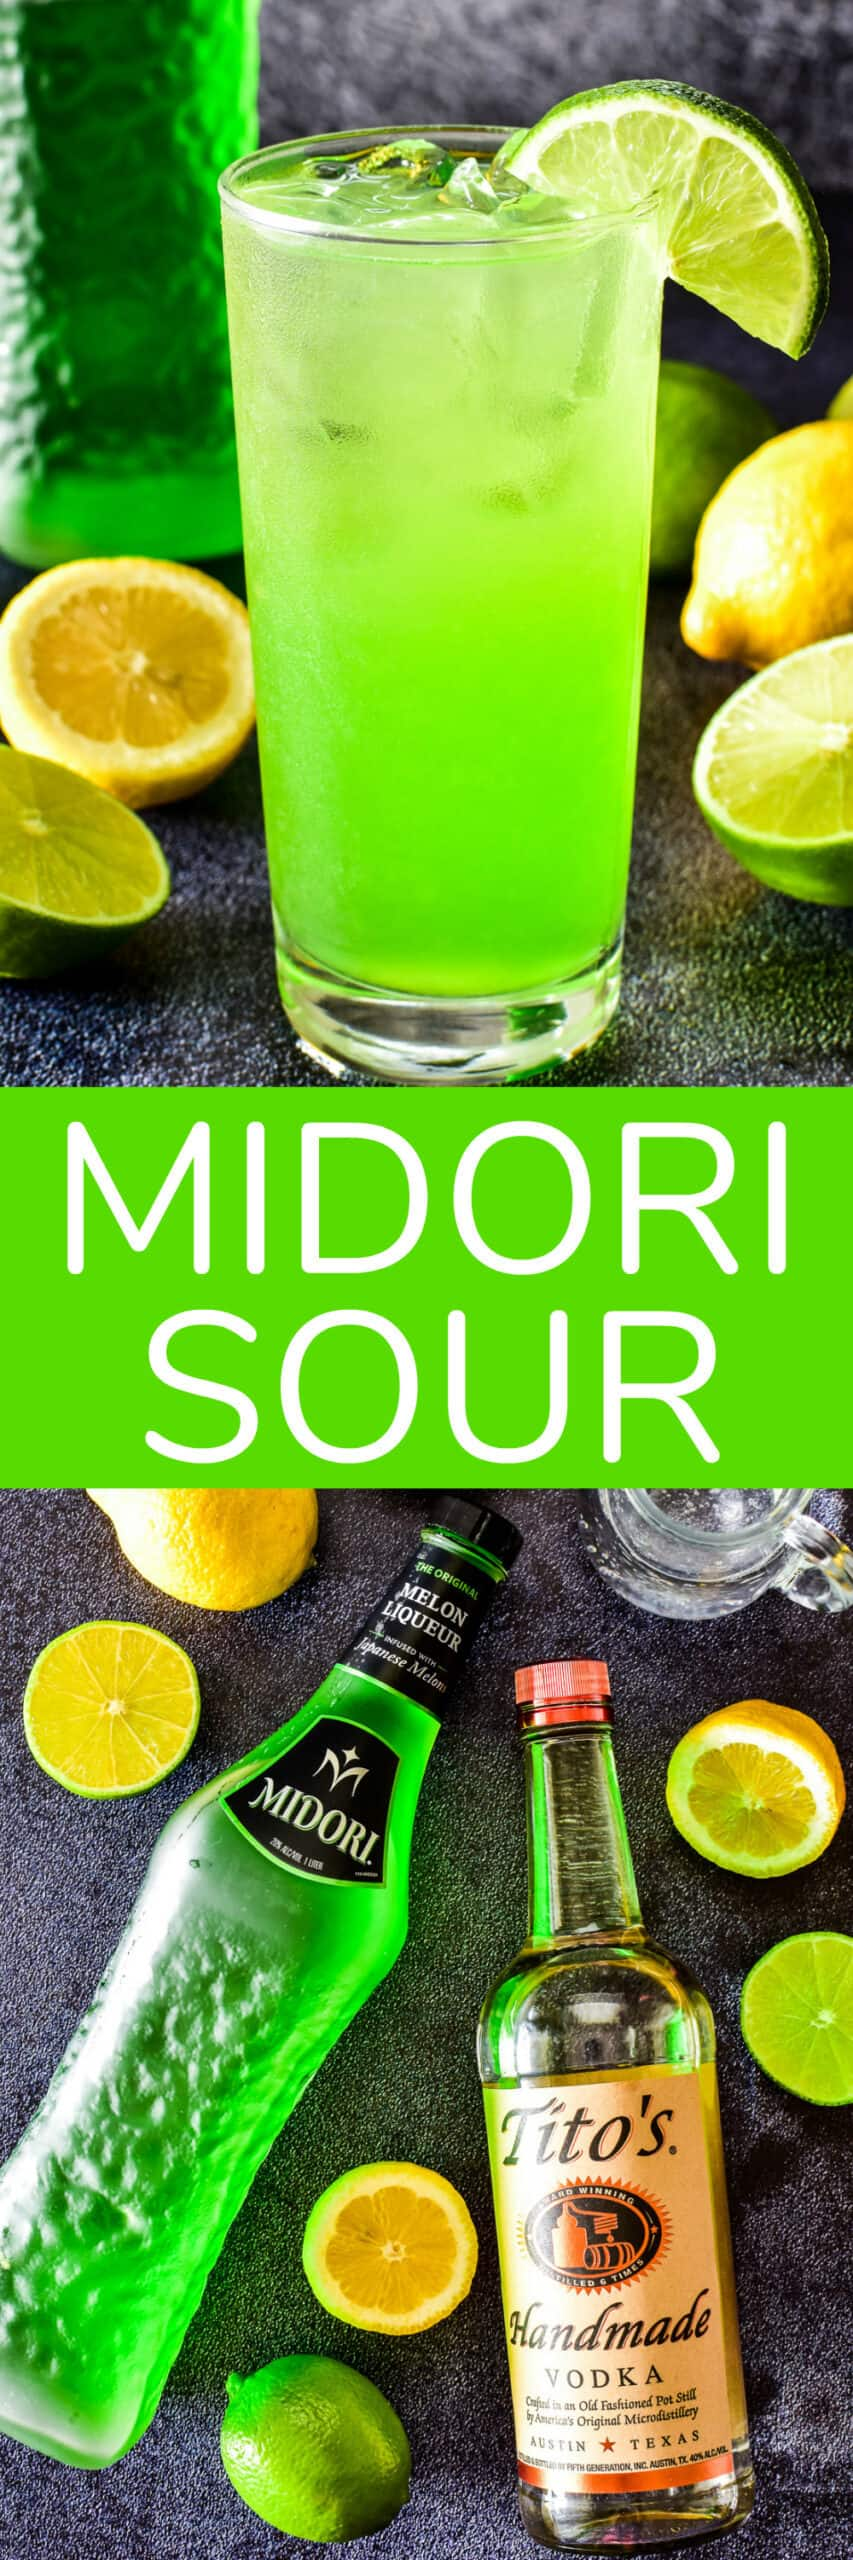 Collage image of Midori Sour